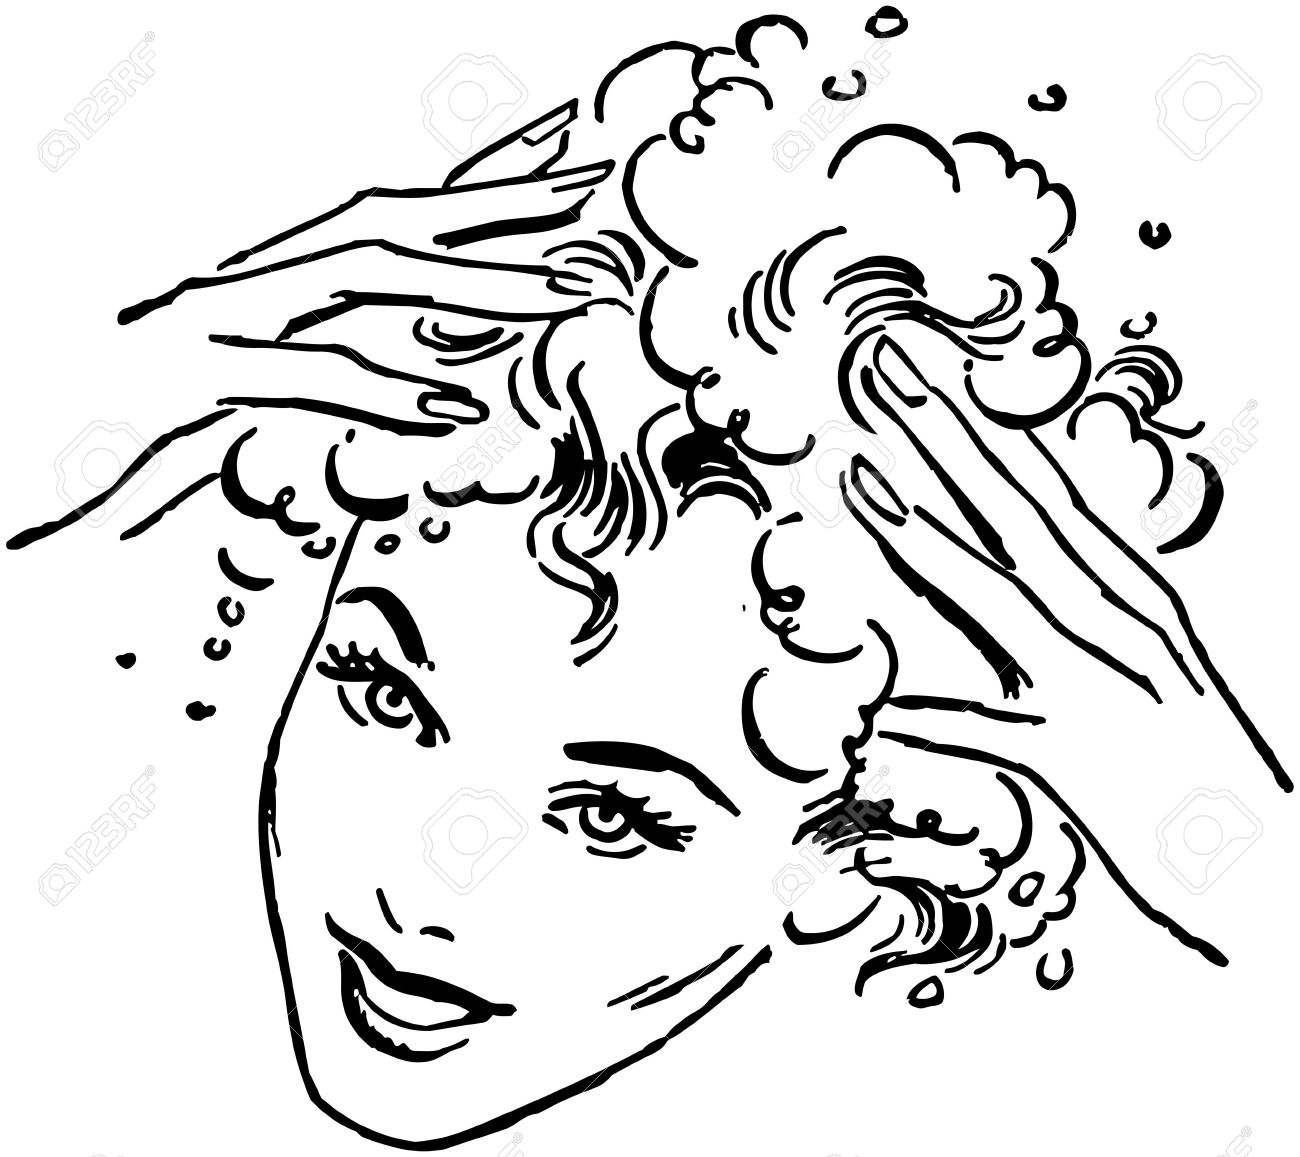 shampoo matizador sache coloring pages - photo#21